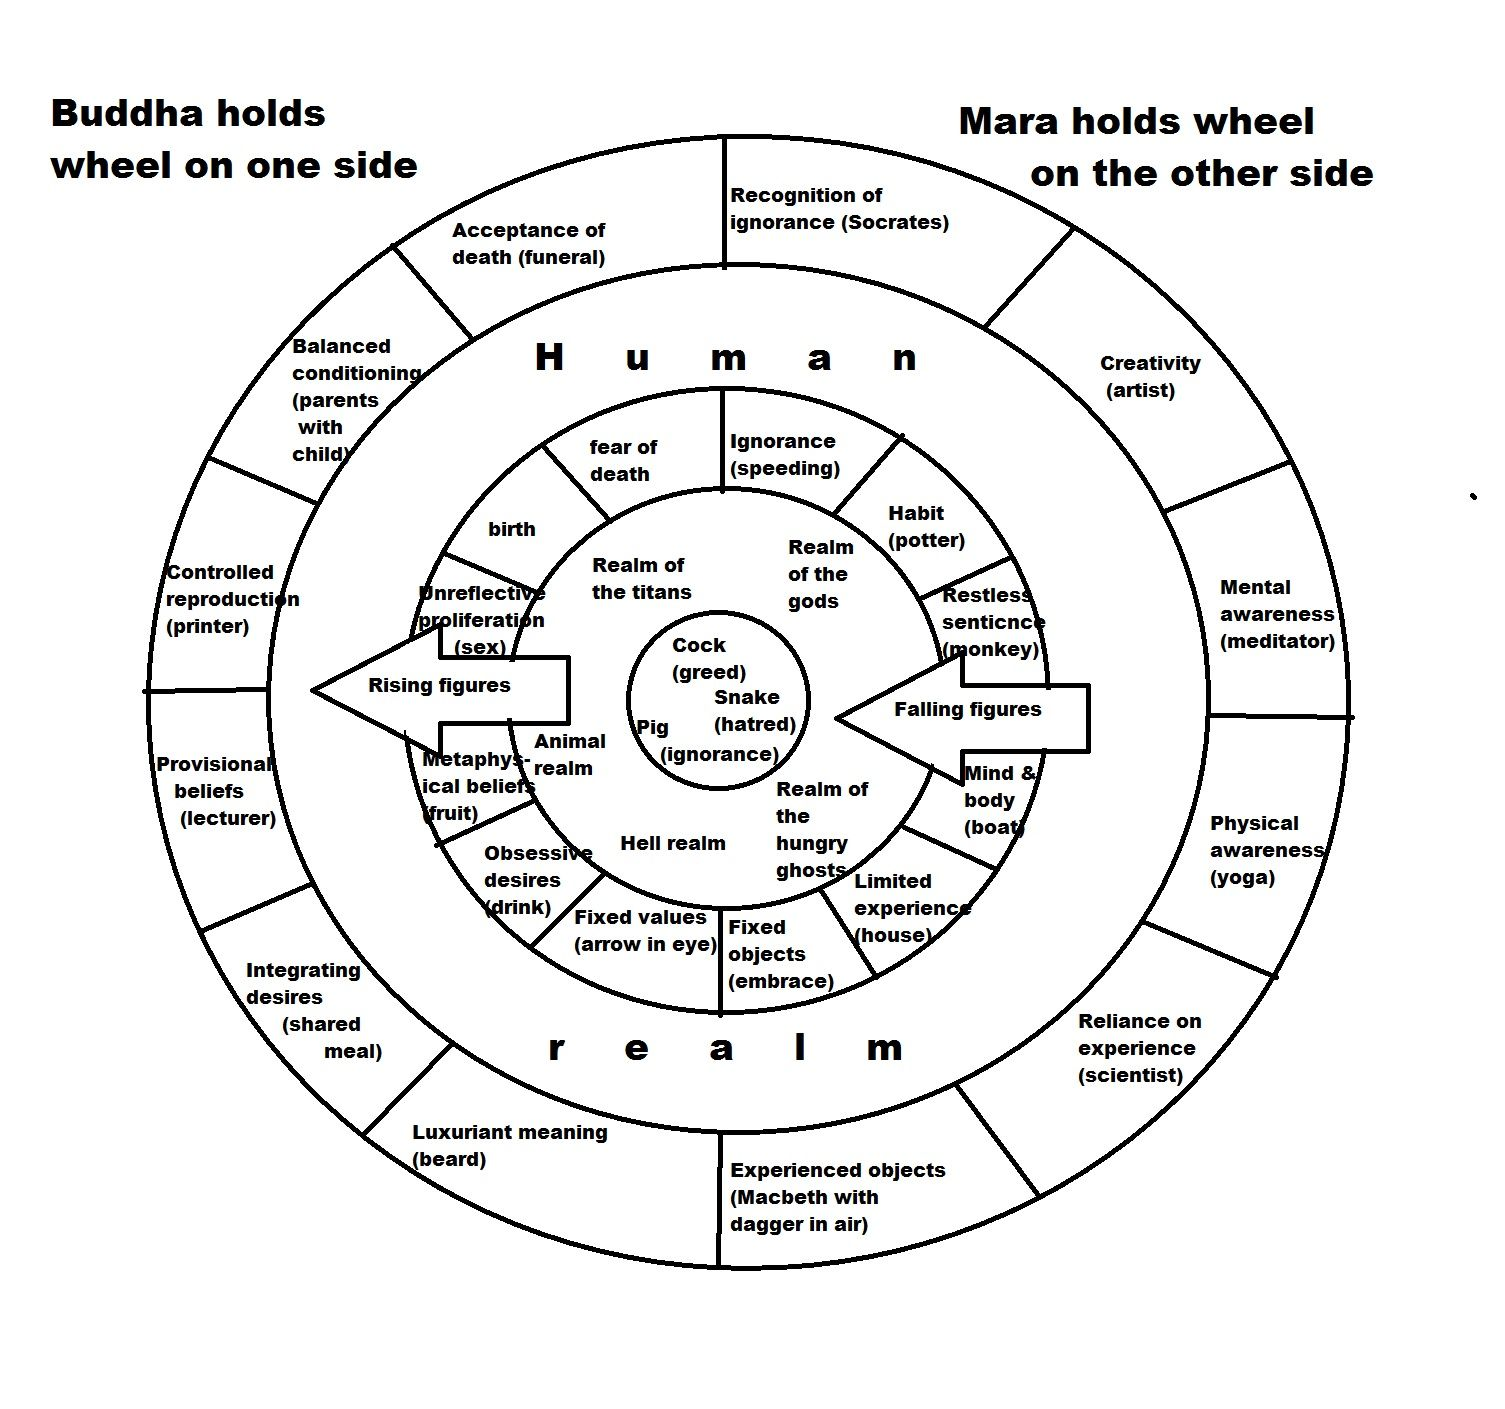 The Wheel Has Been Used As A Symbol For The Concept Of